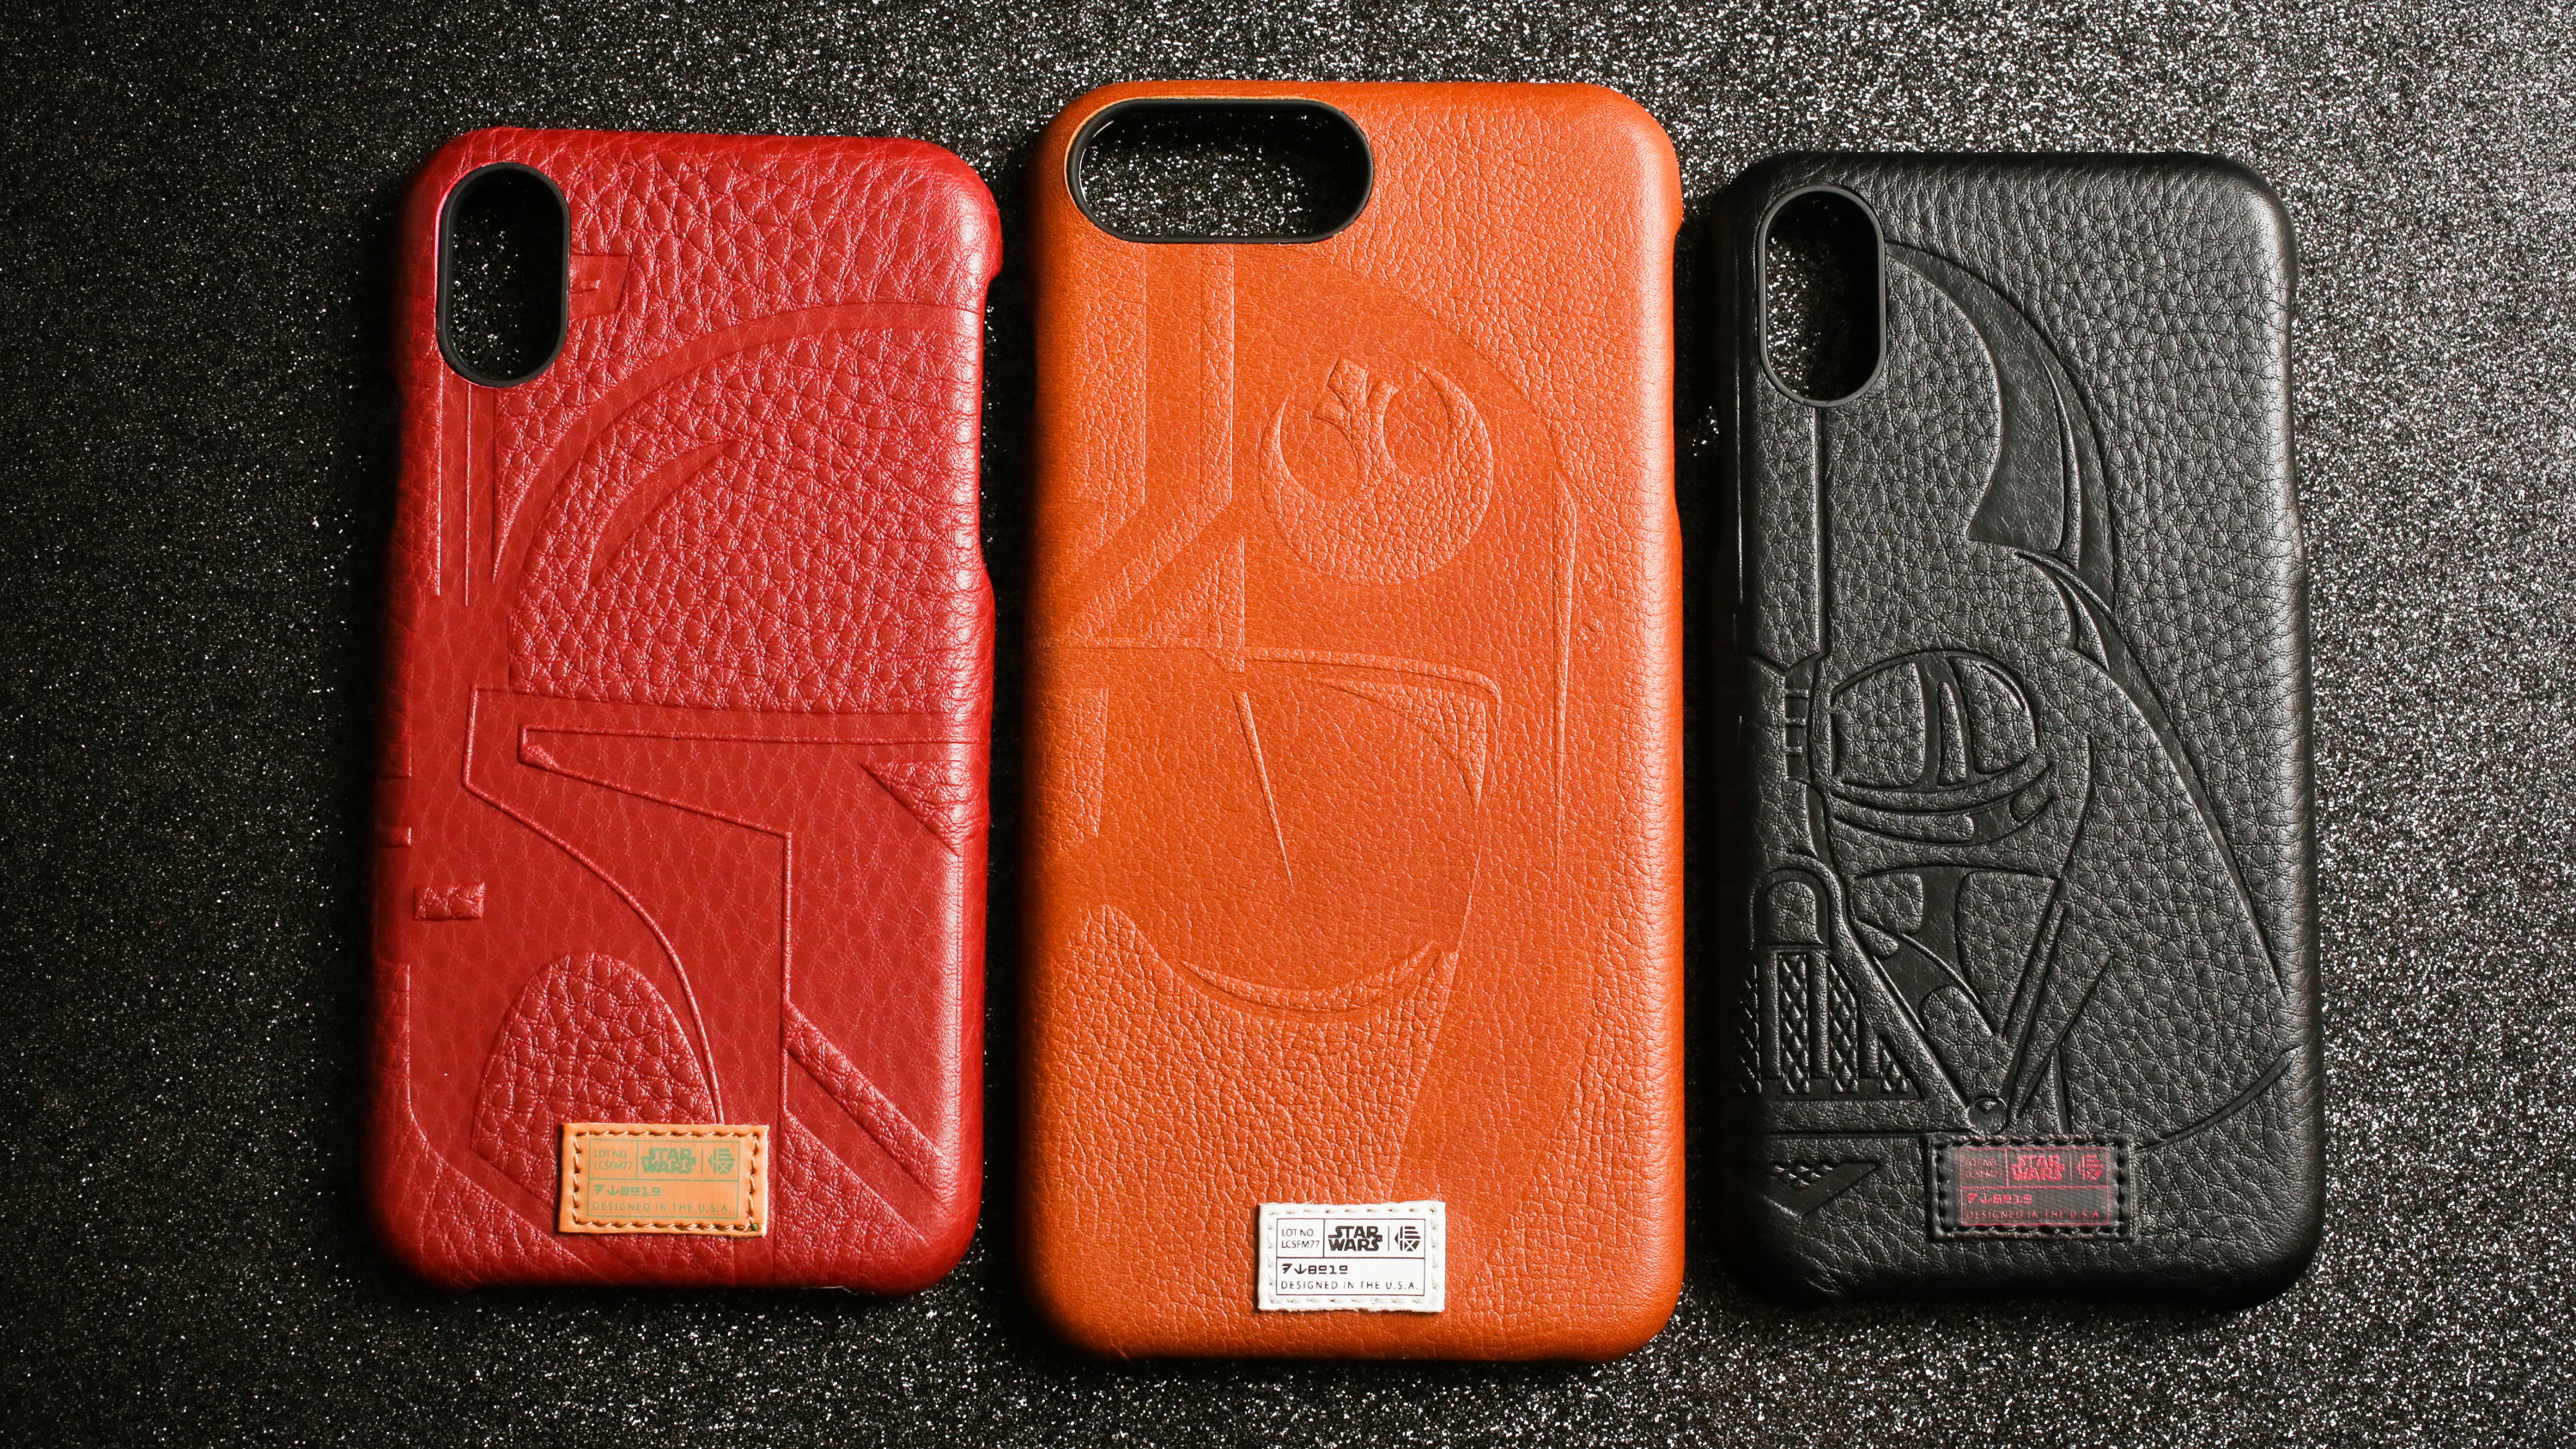 Are Hex's Star Wars iPhone cases better than OtterBox's? - CNET